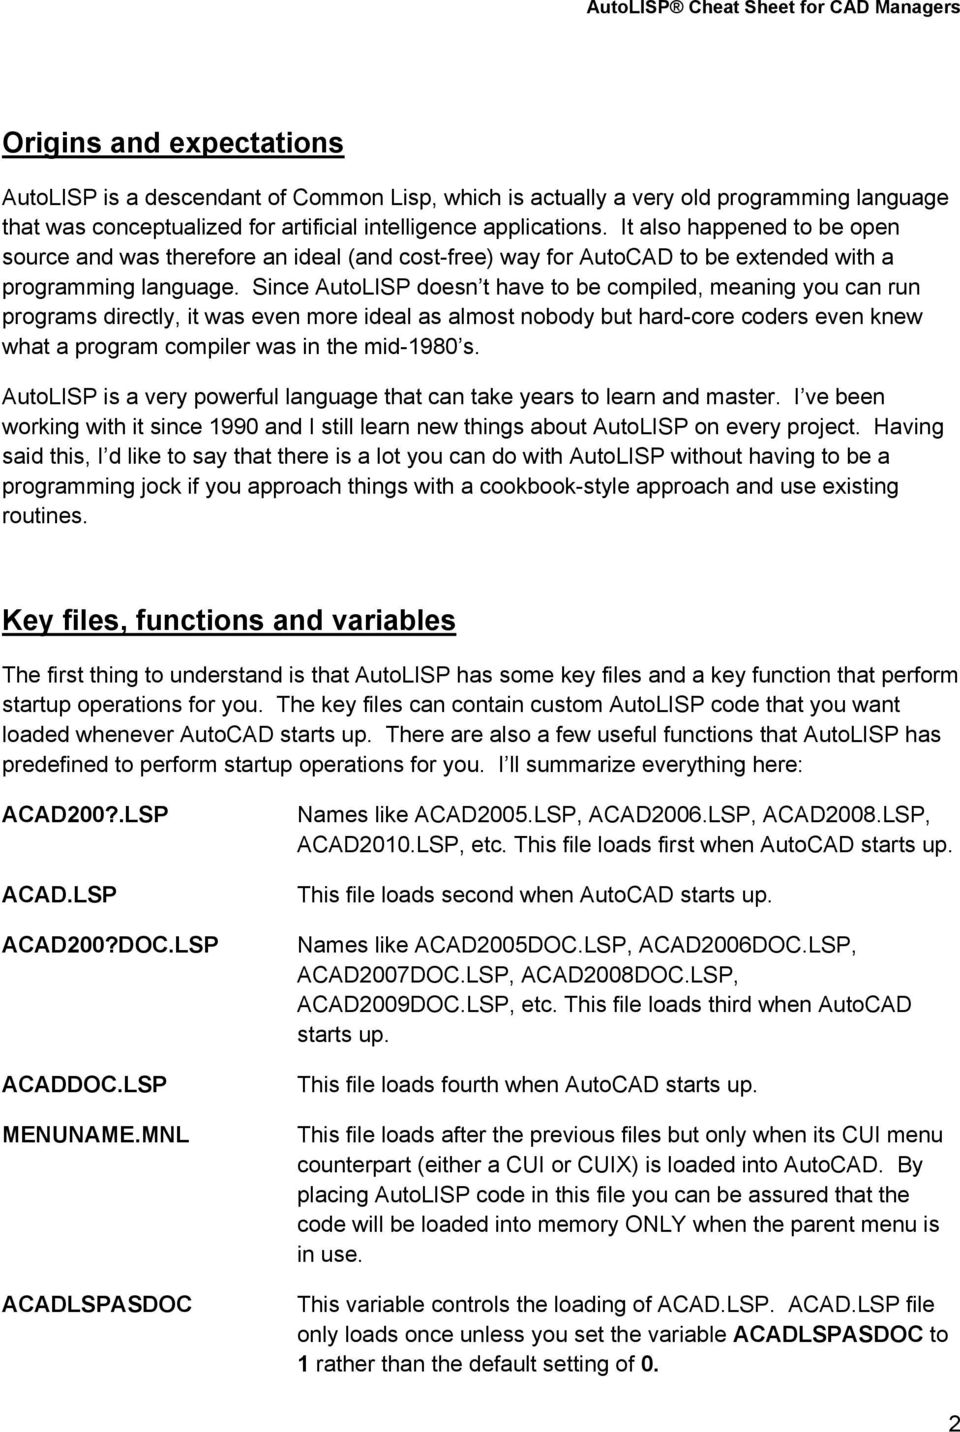 AutoLISP Cheat Sheet for CAD Managers - PDF